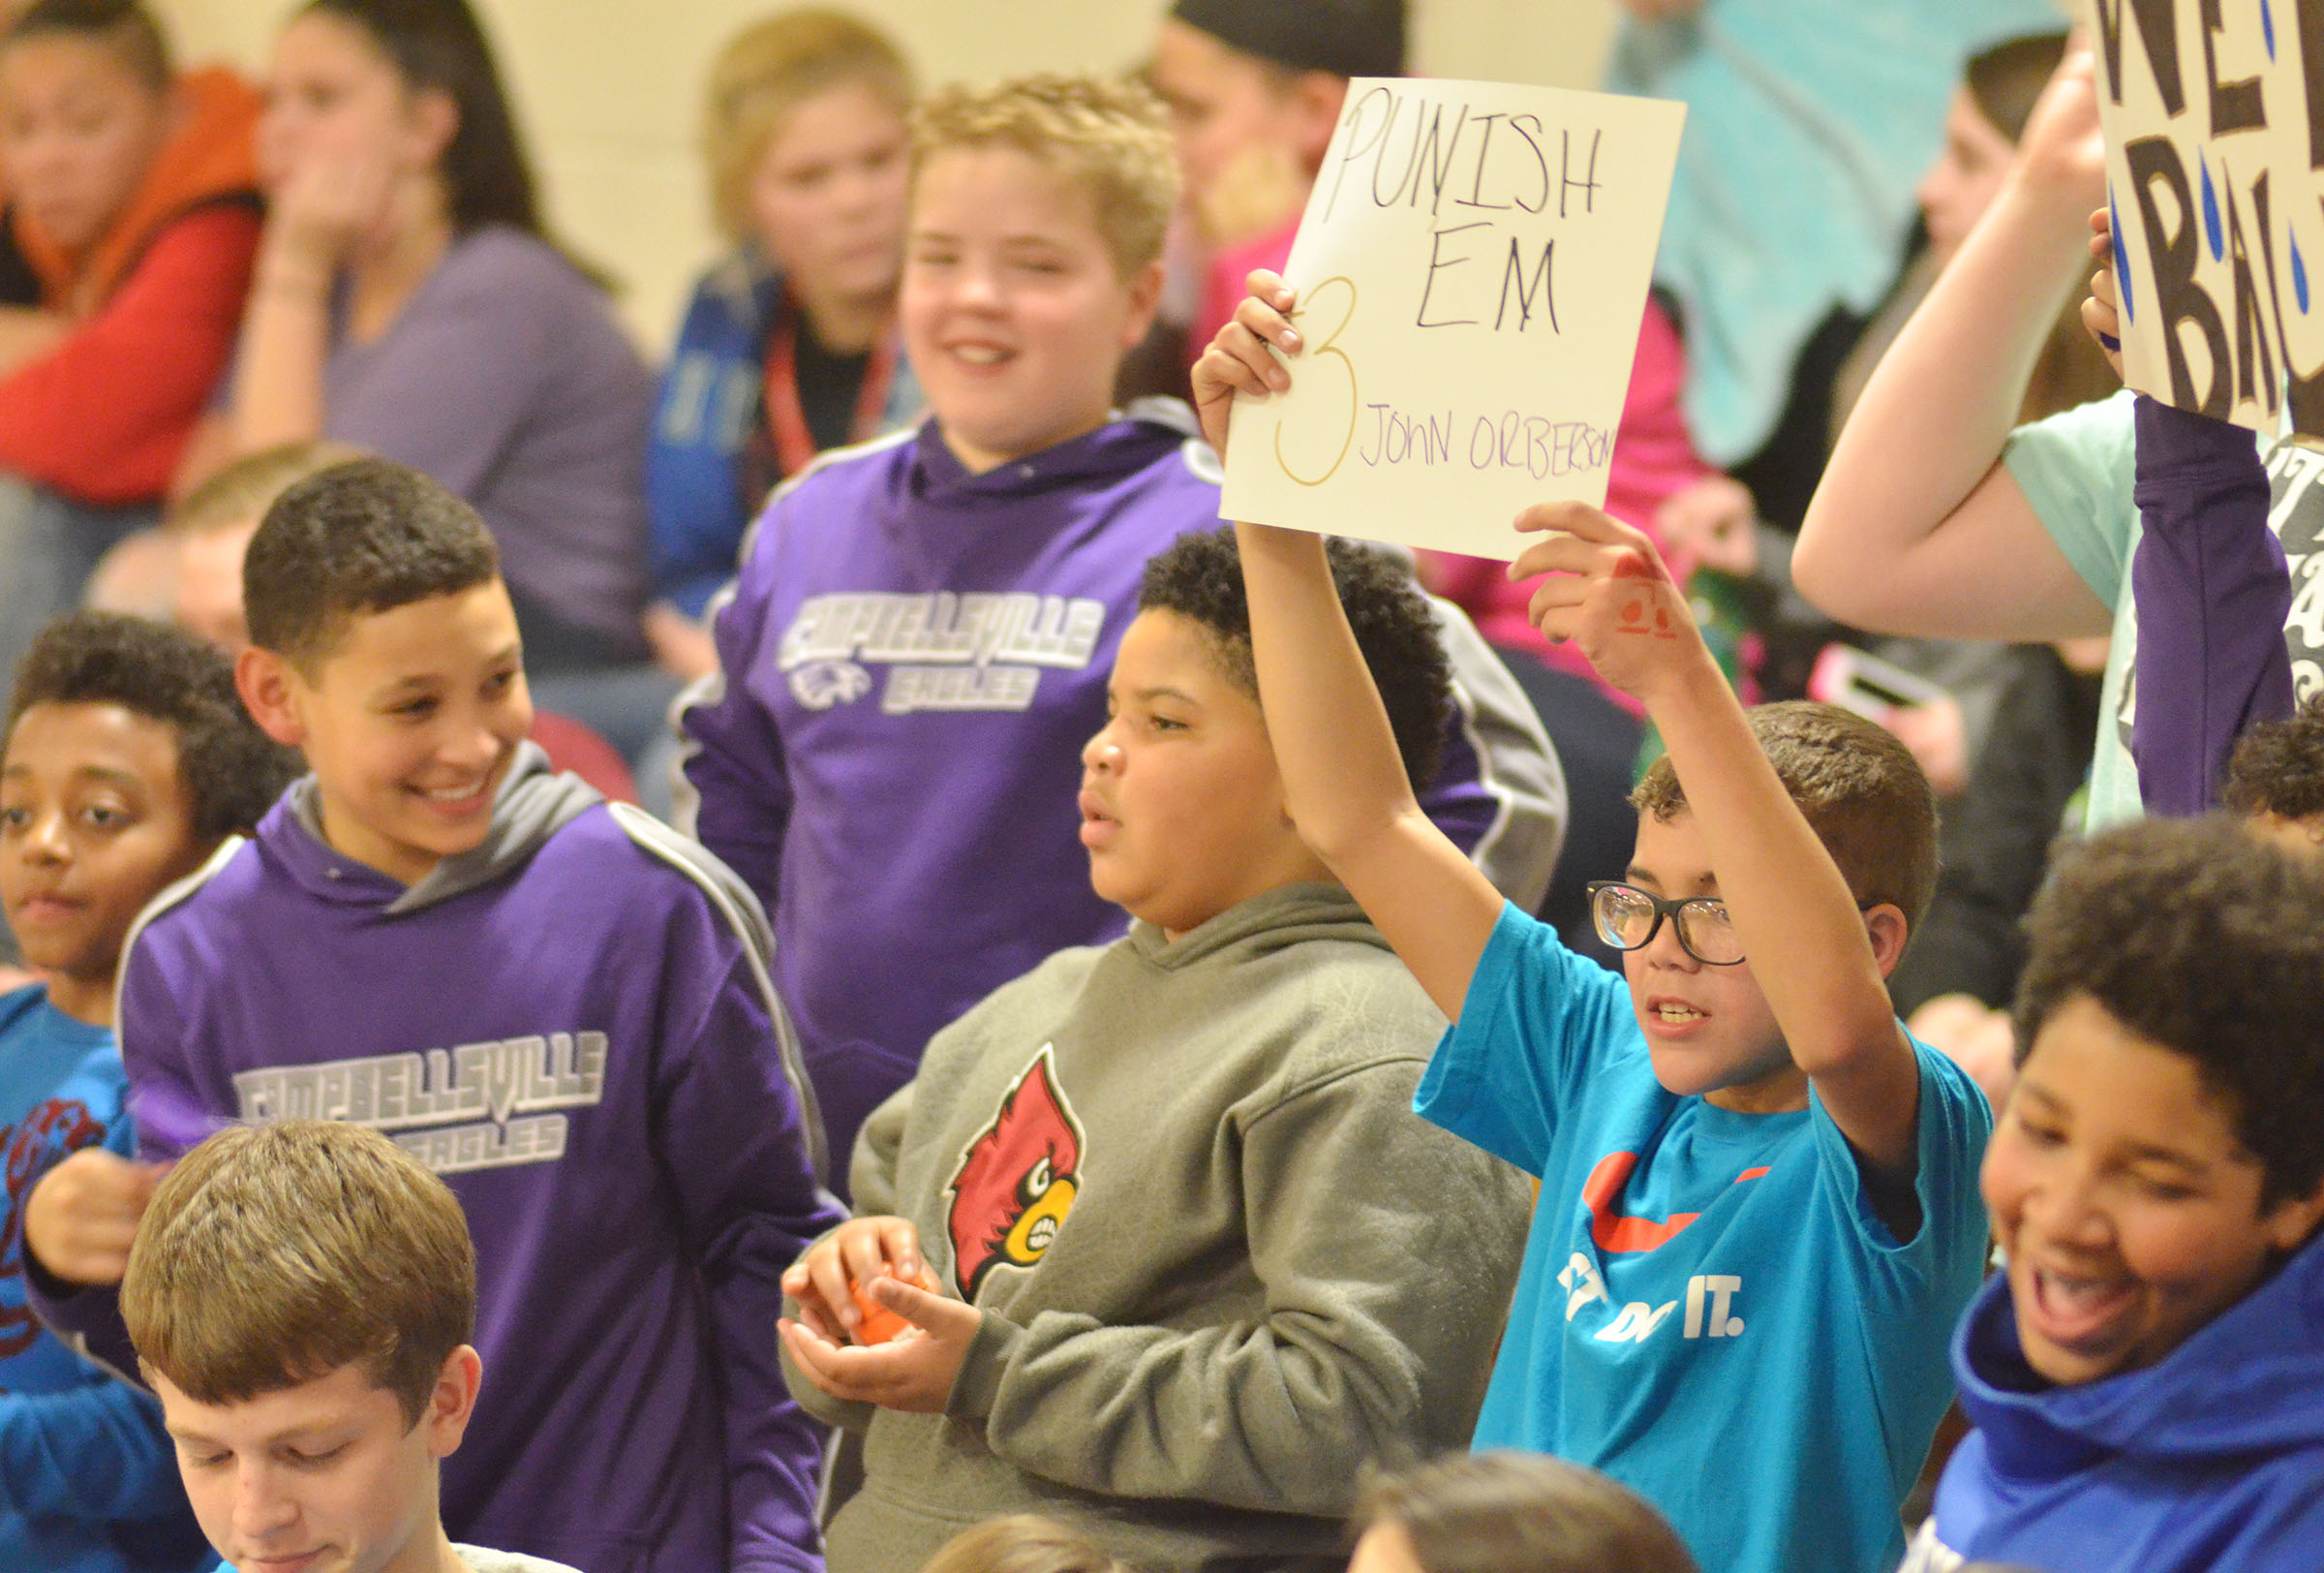 CMS seventh-grader Logan Phillips holds a sign for eighth-grade player John Orberson.